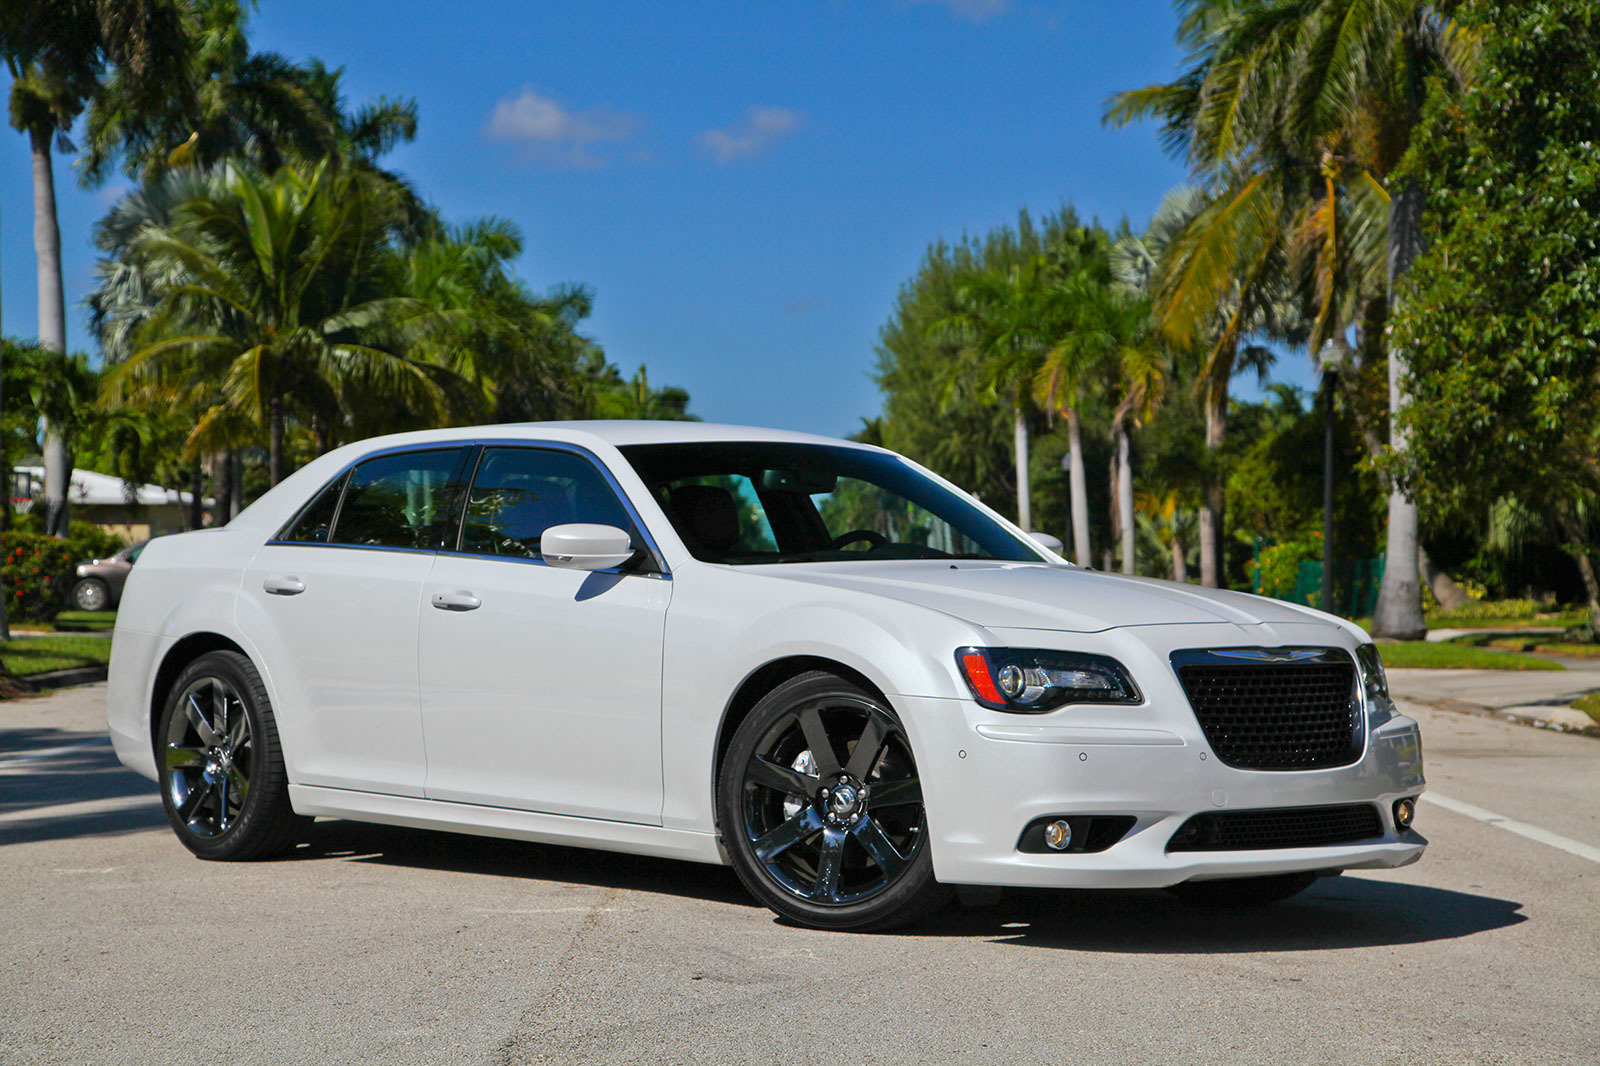 2013 chrysler 300 srt8 picture 528581 car review top speed. Cars Review. Best American Auto & Cars Review